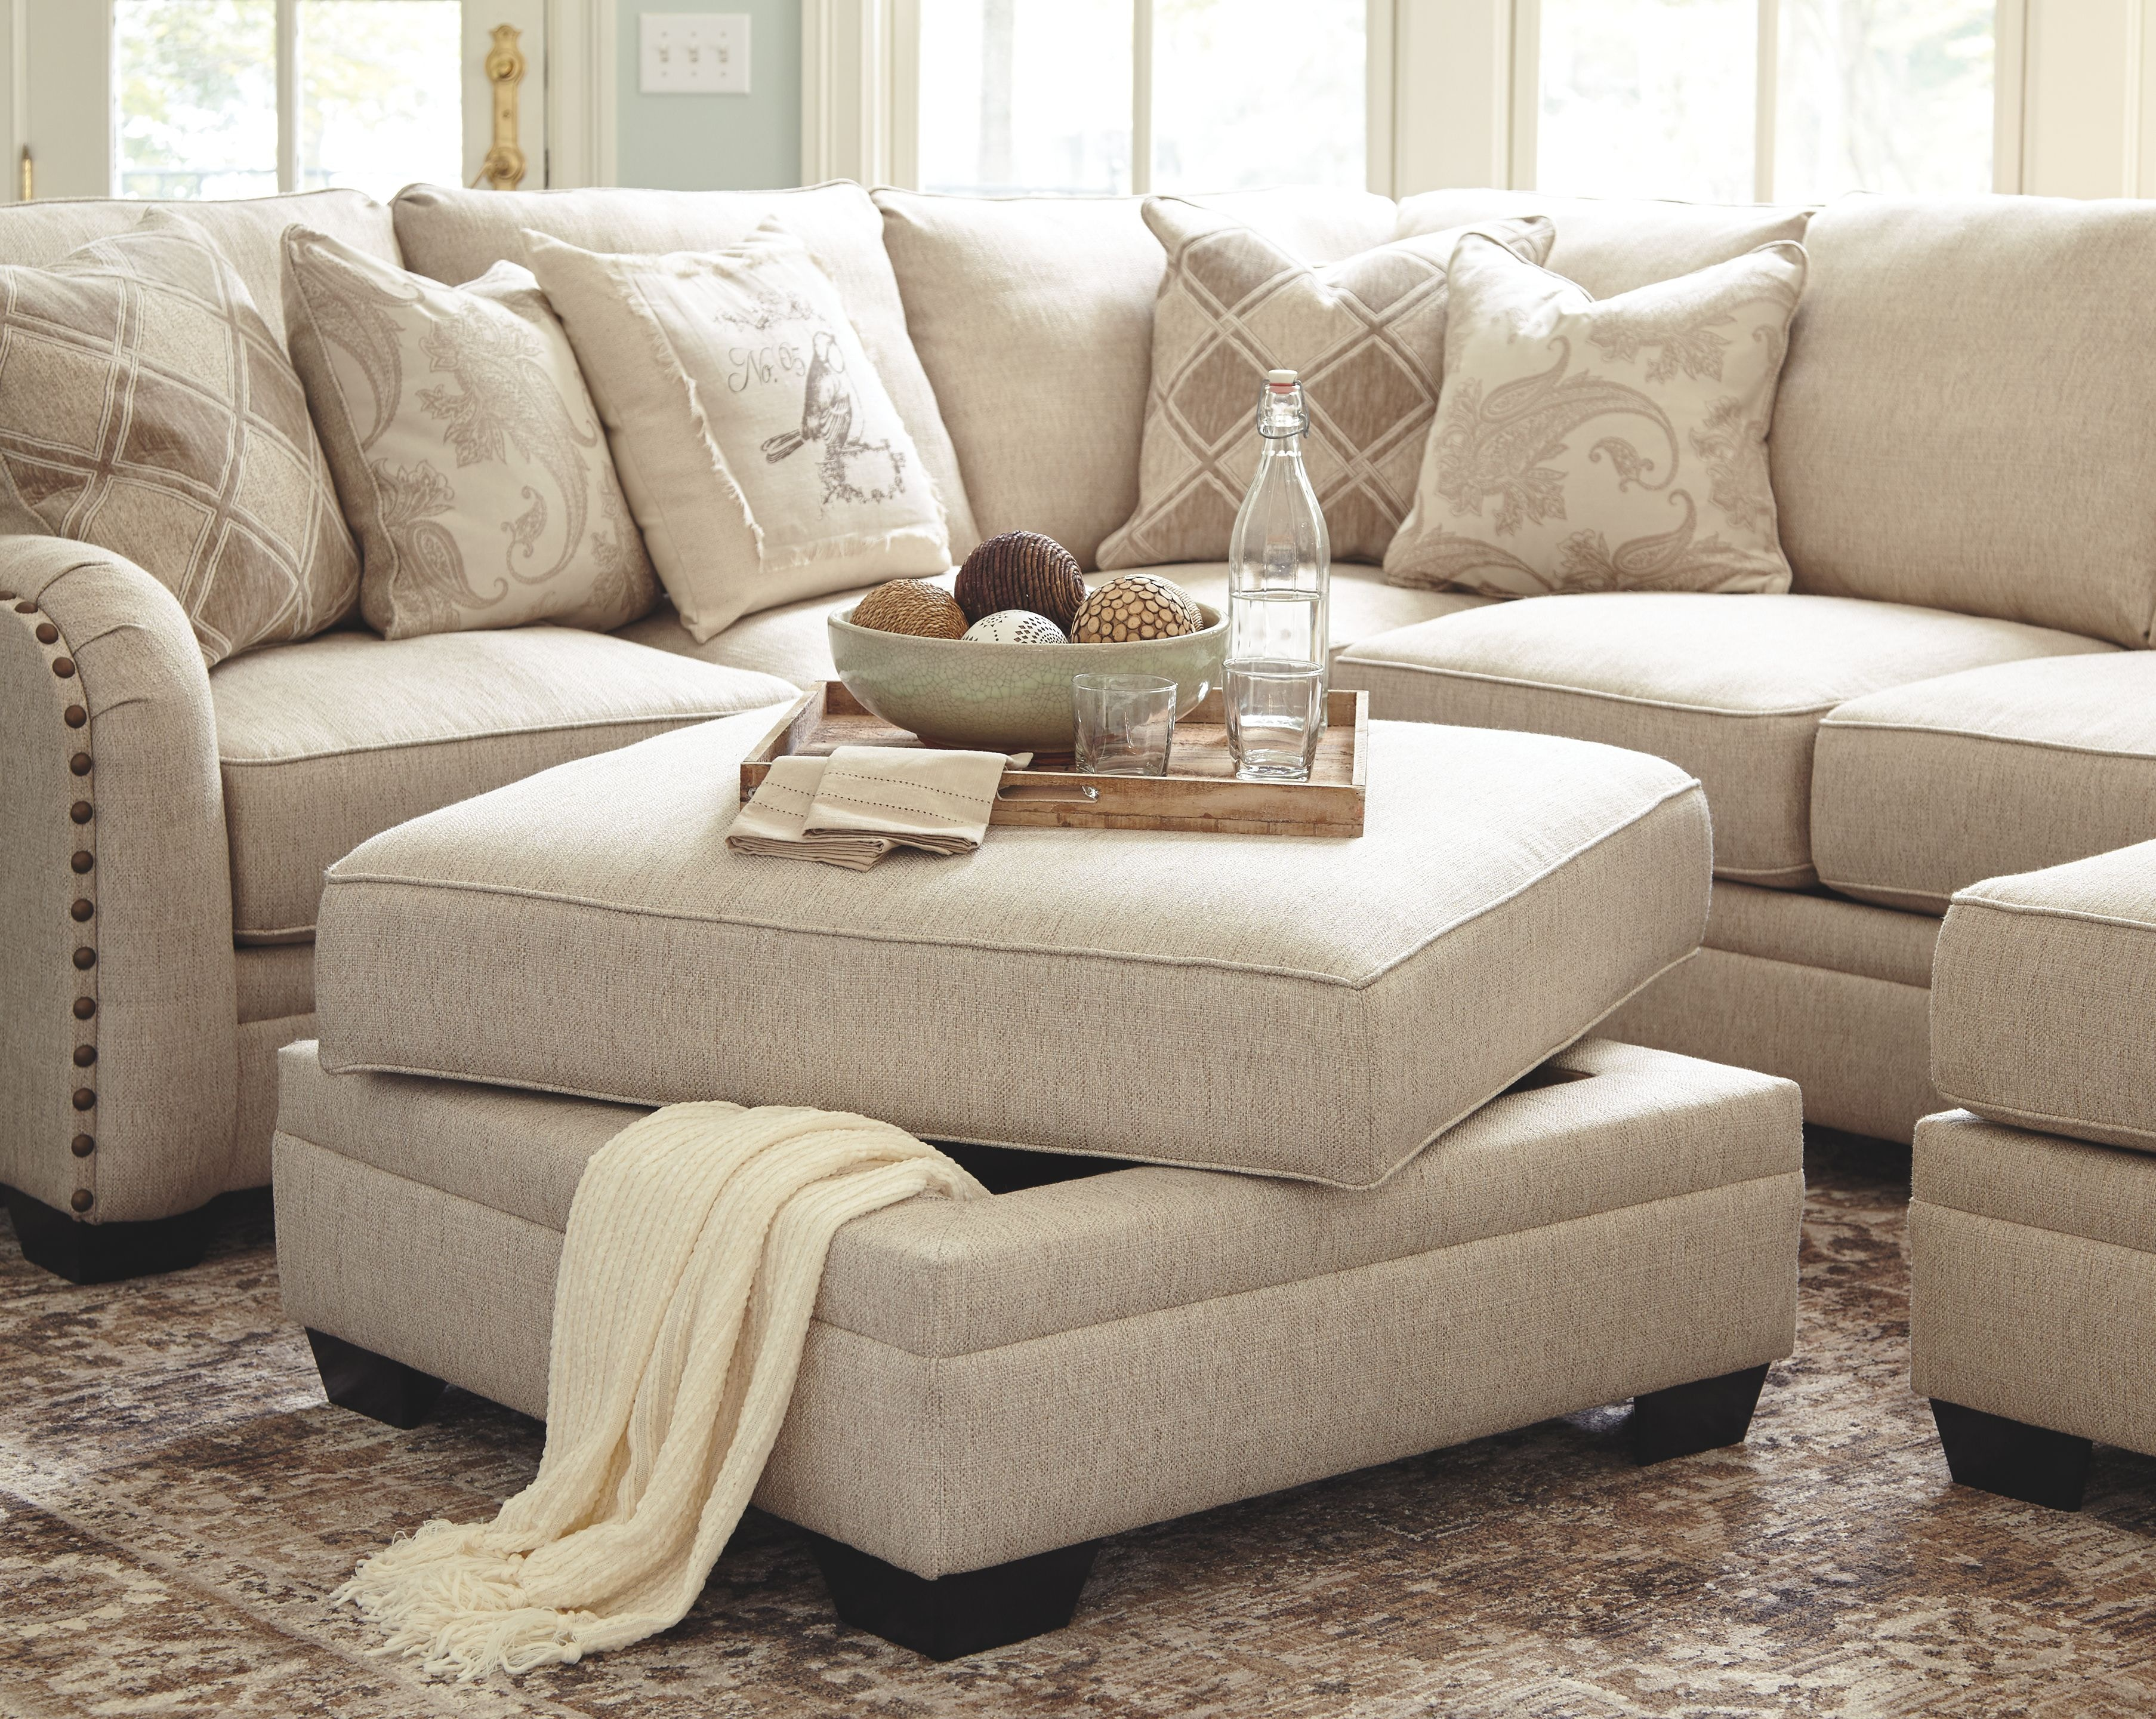 Millennium Ottoman With Storage On Sale At Elgin Furniture Stores In  Euclid, Cleveland Heights And North Randall